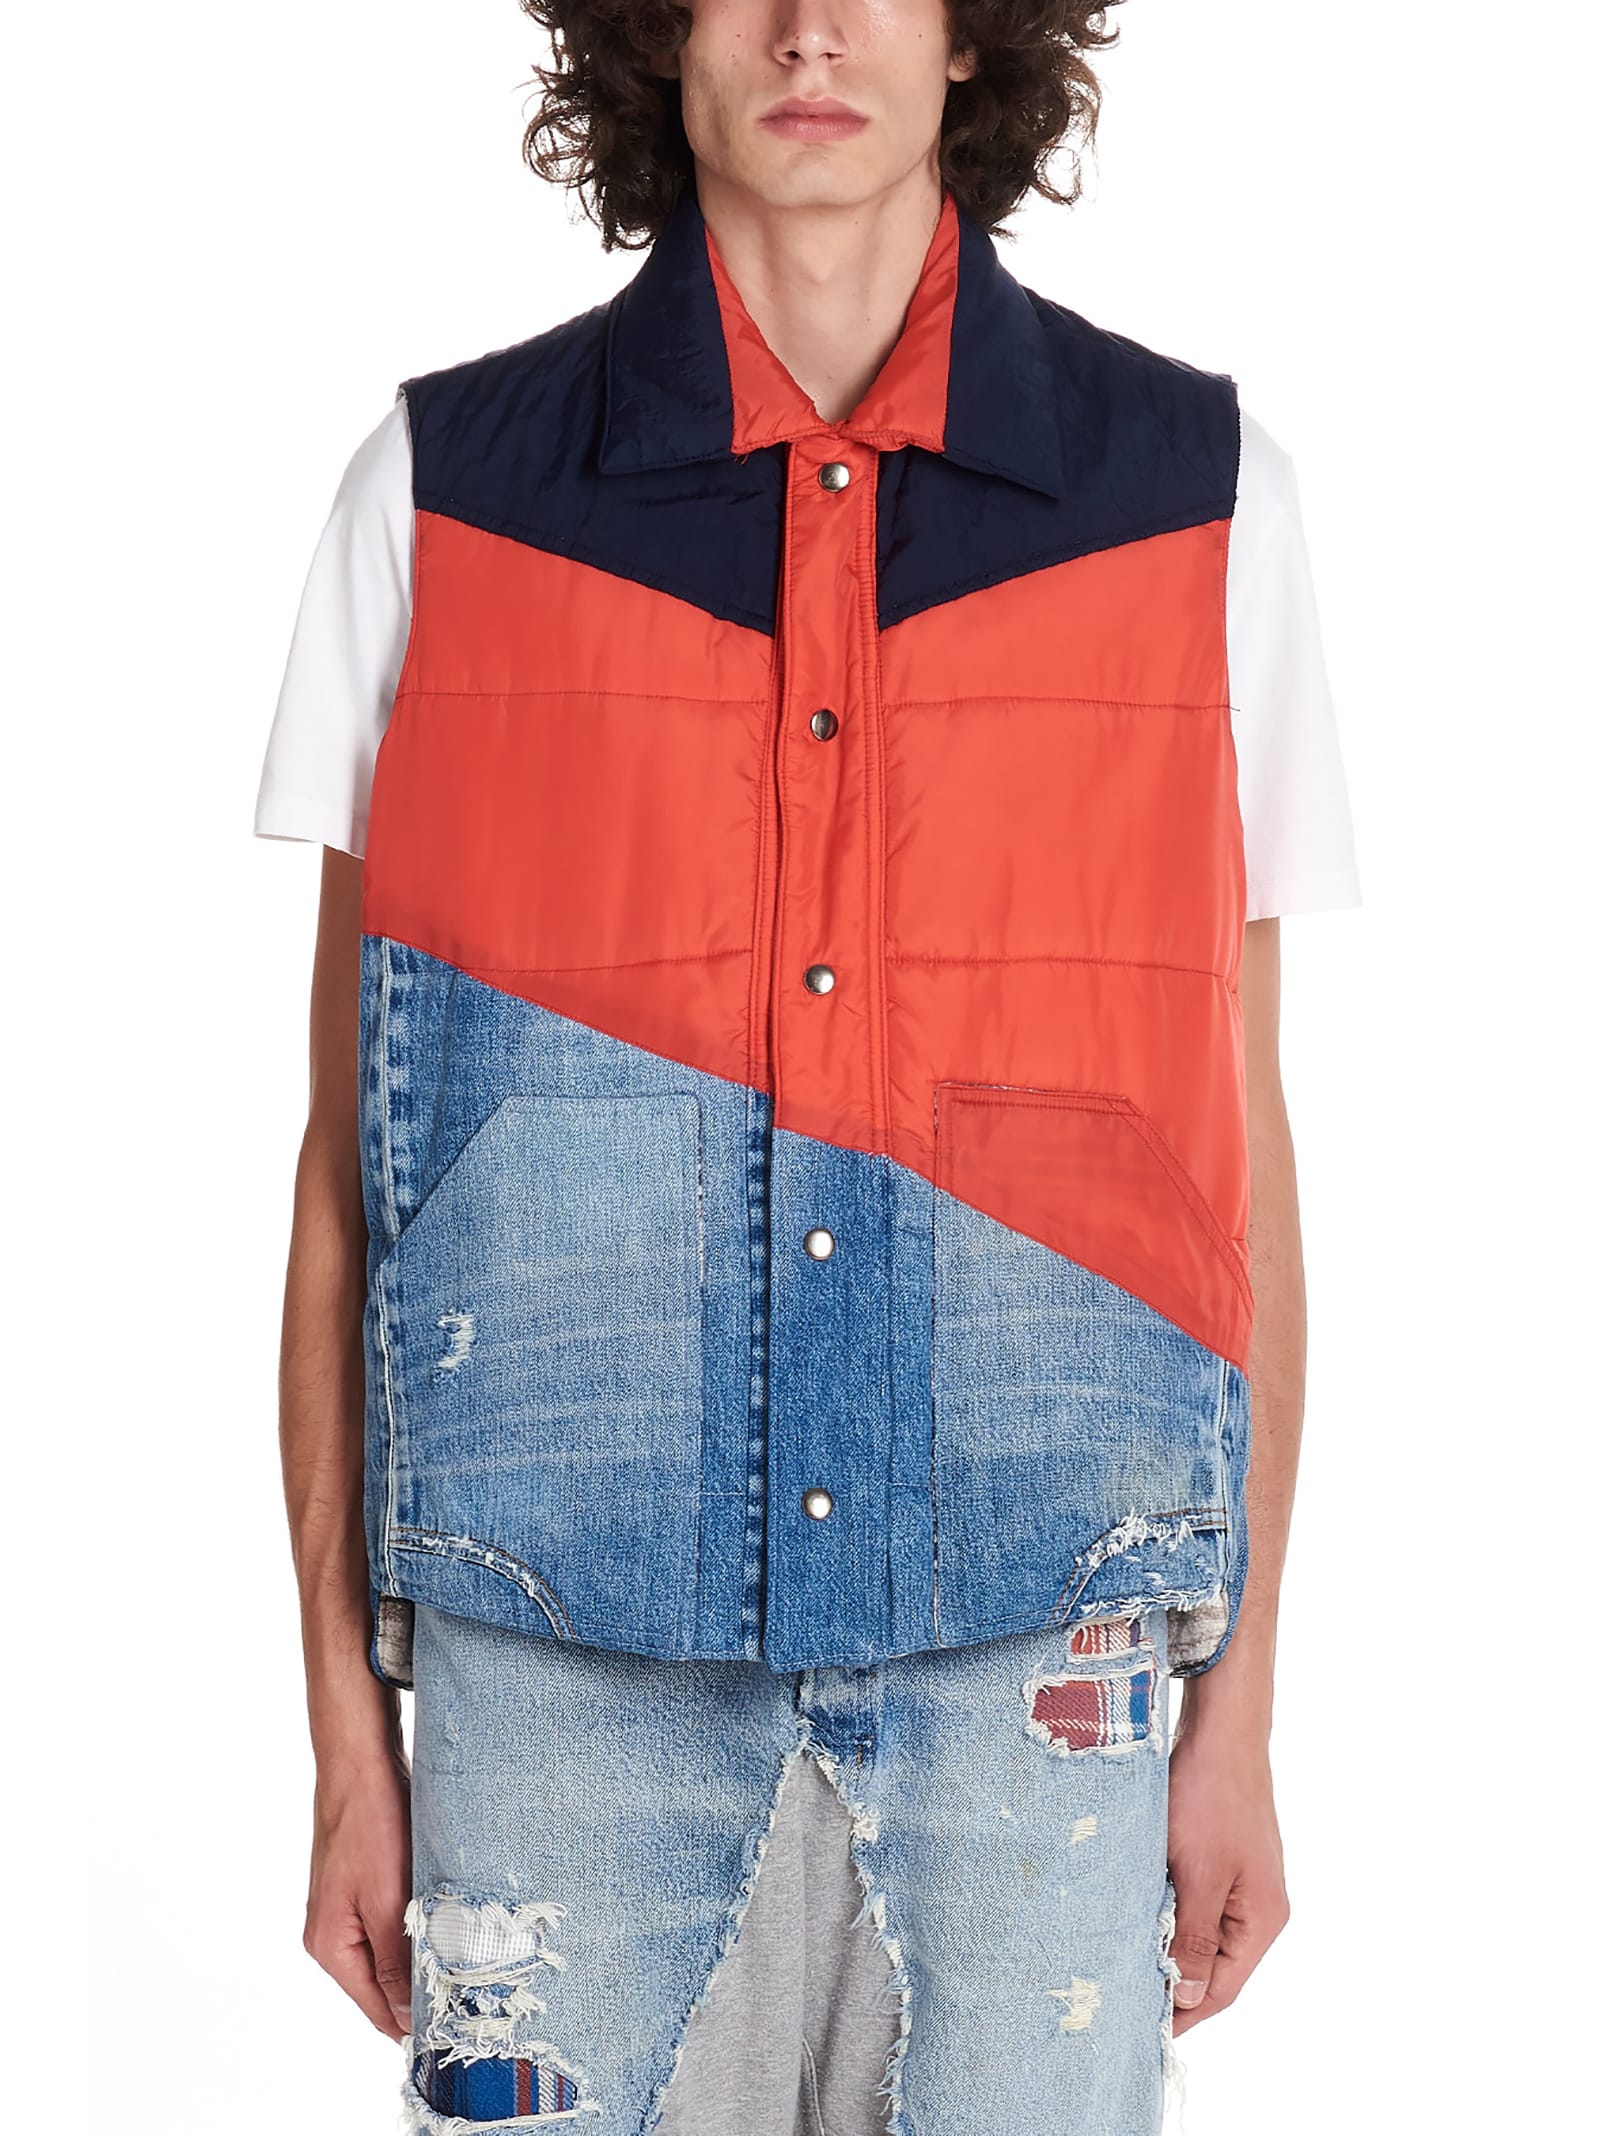 Greg Lauren Tops 50/50 VEST